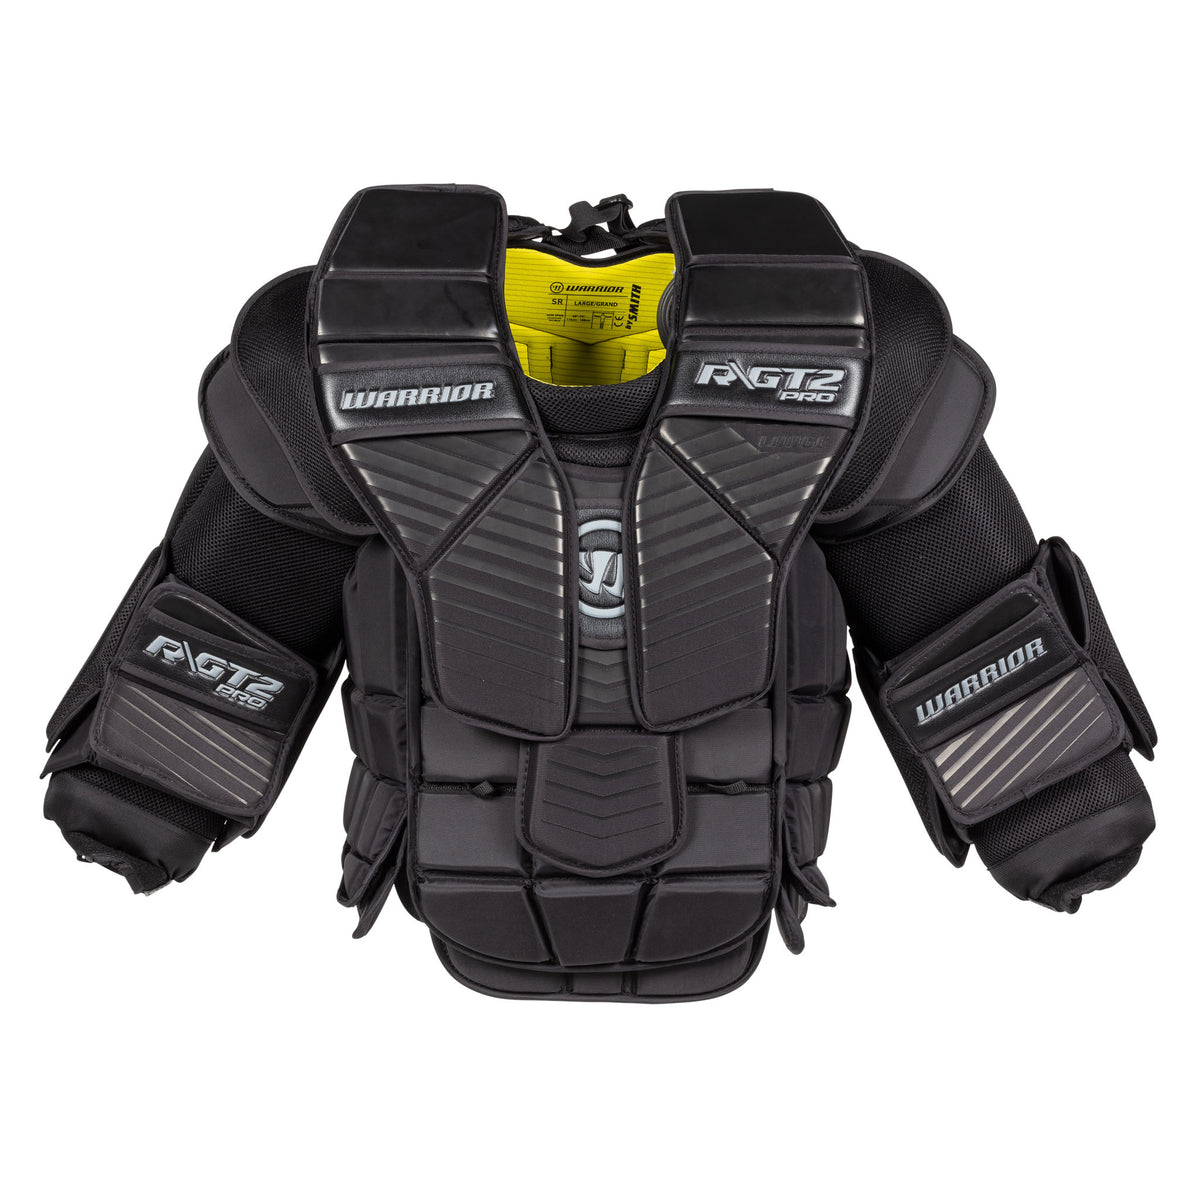 Warrior Ritual GT2 Pro Senior Chest & Arm Protector